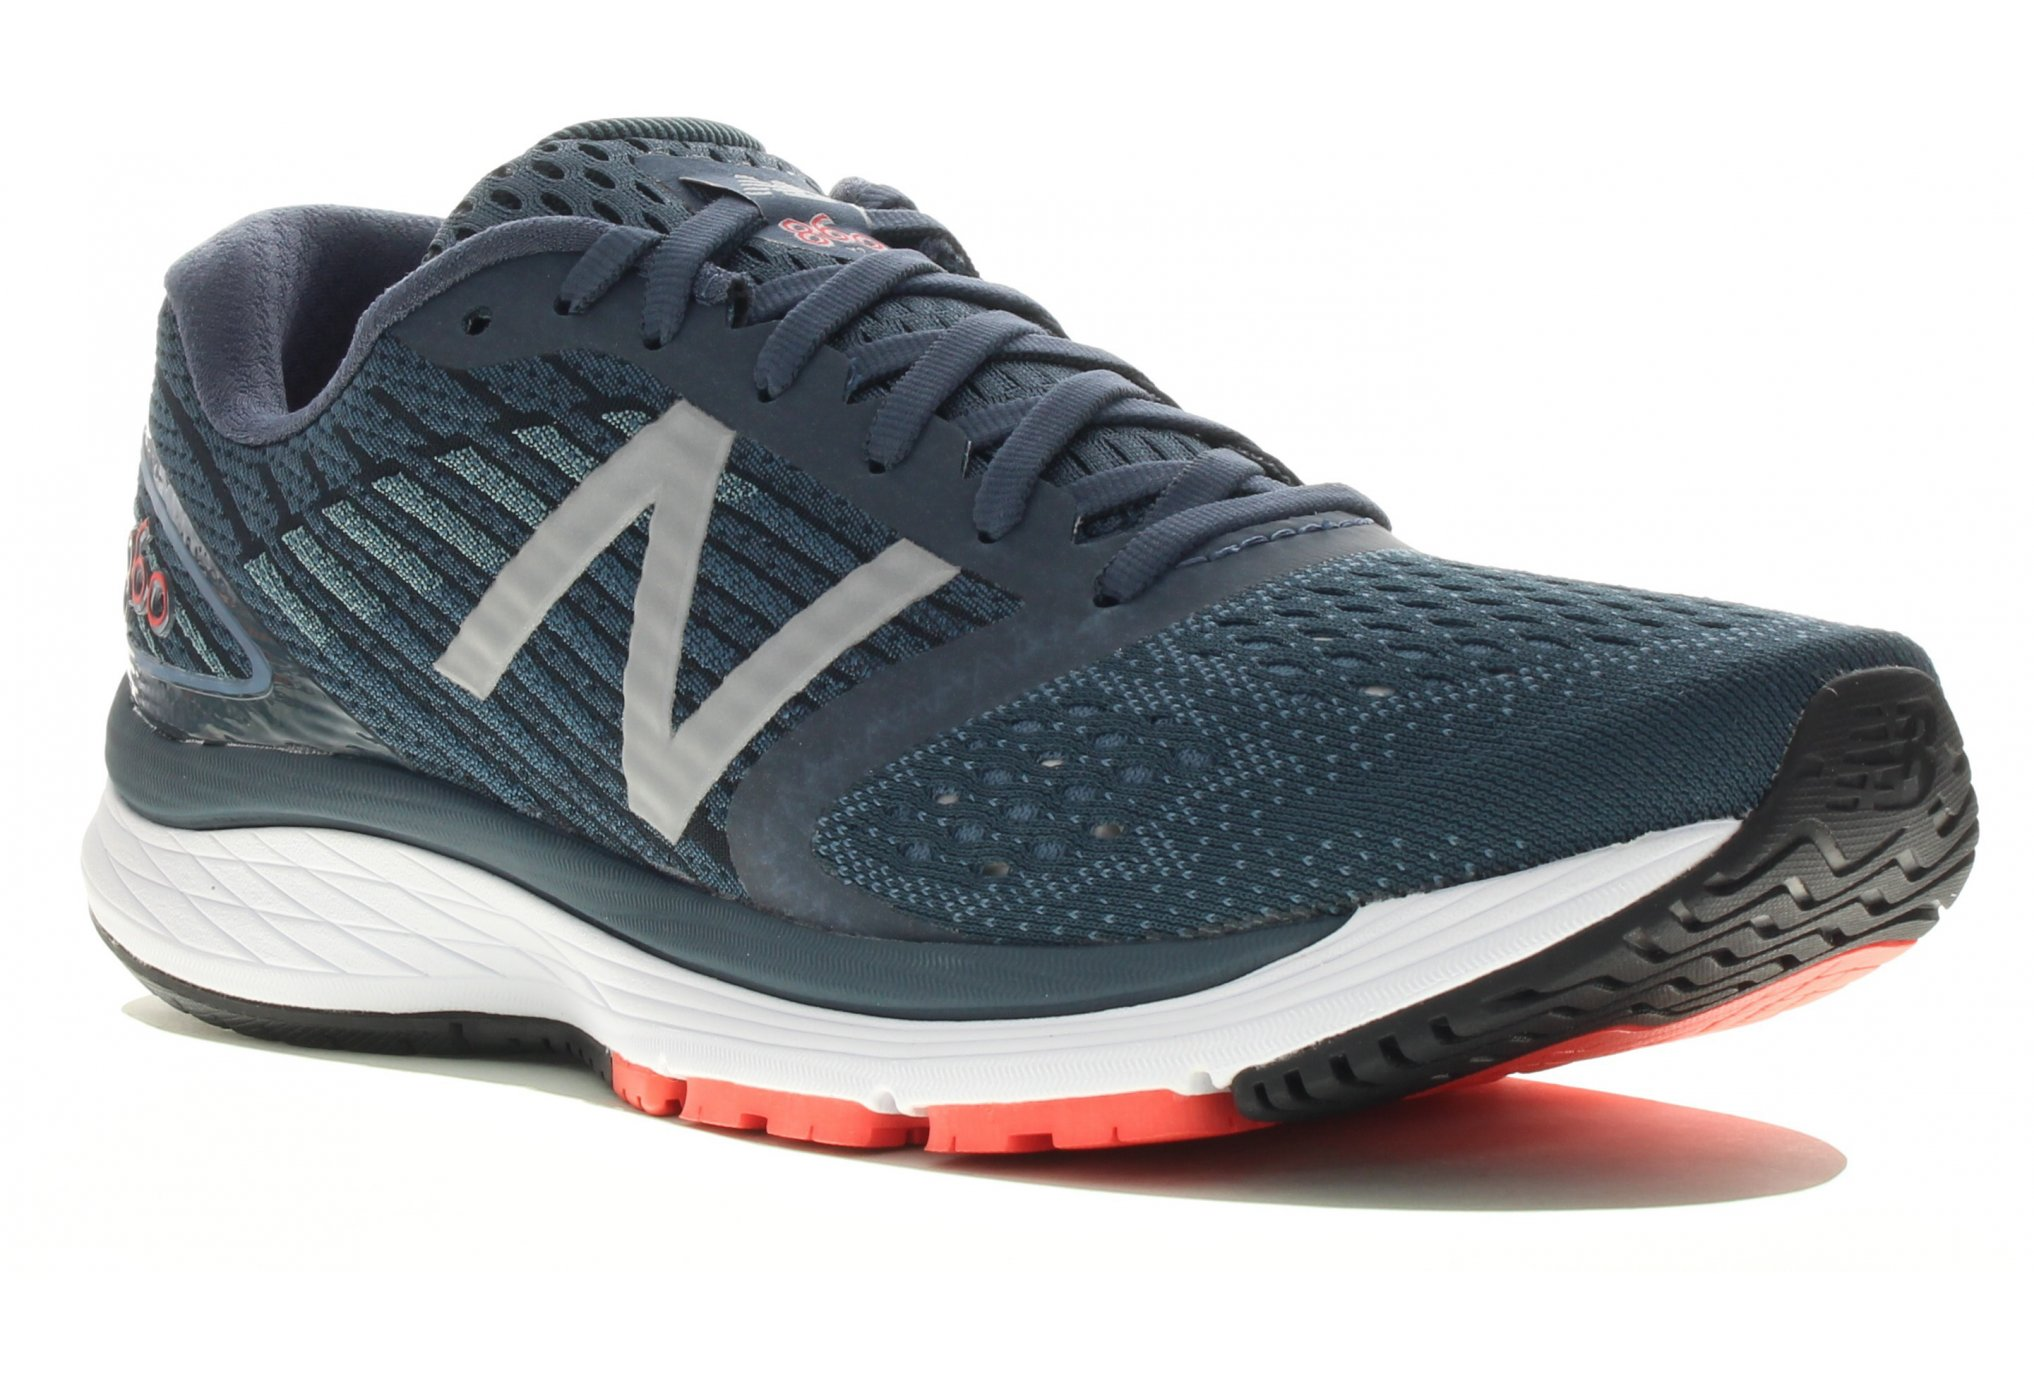 New Balance M 860 V9 - D Chaussures homme